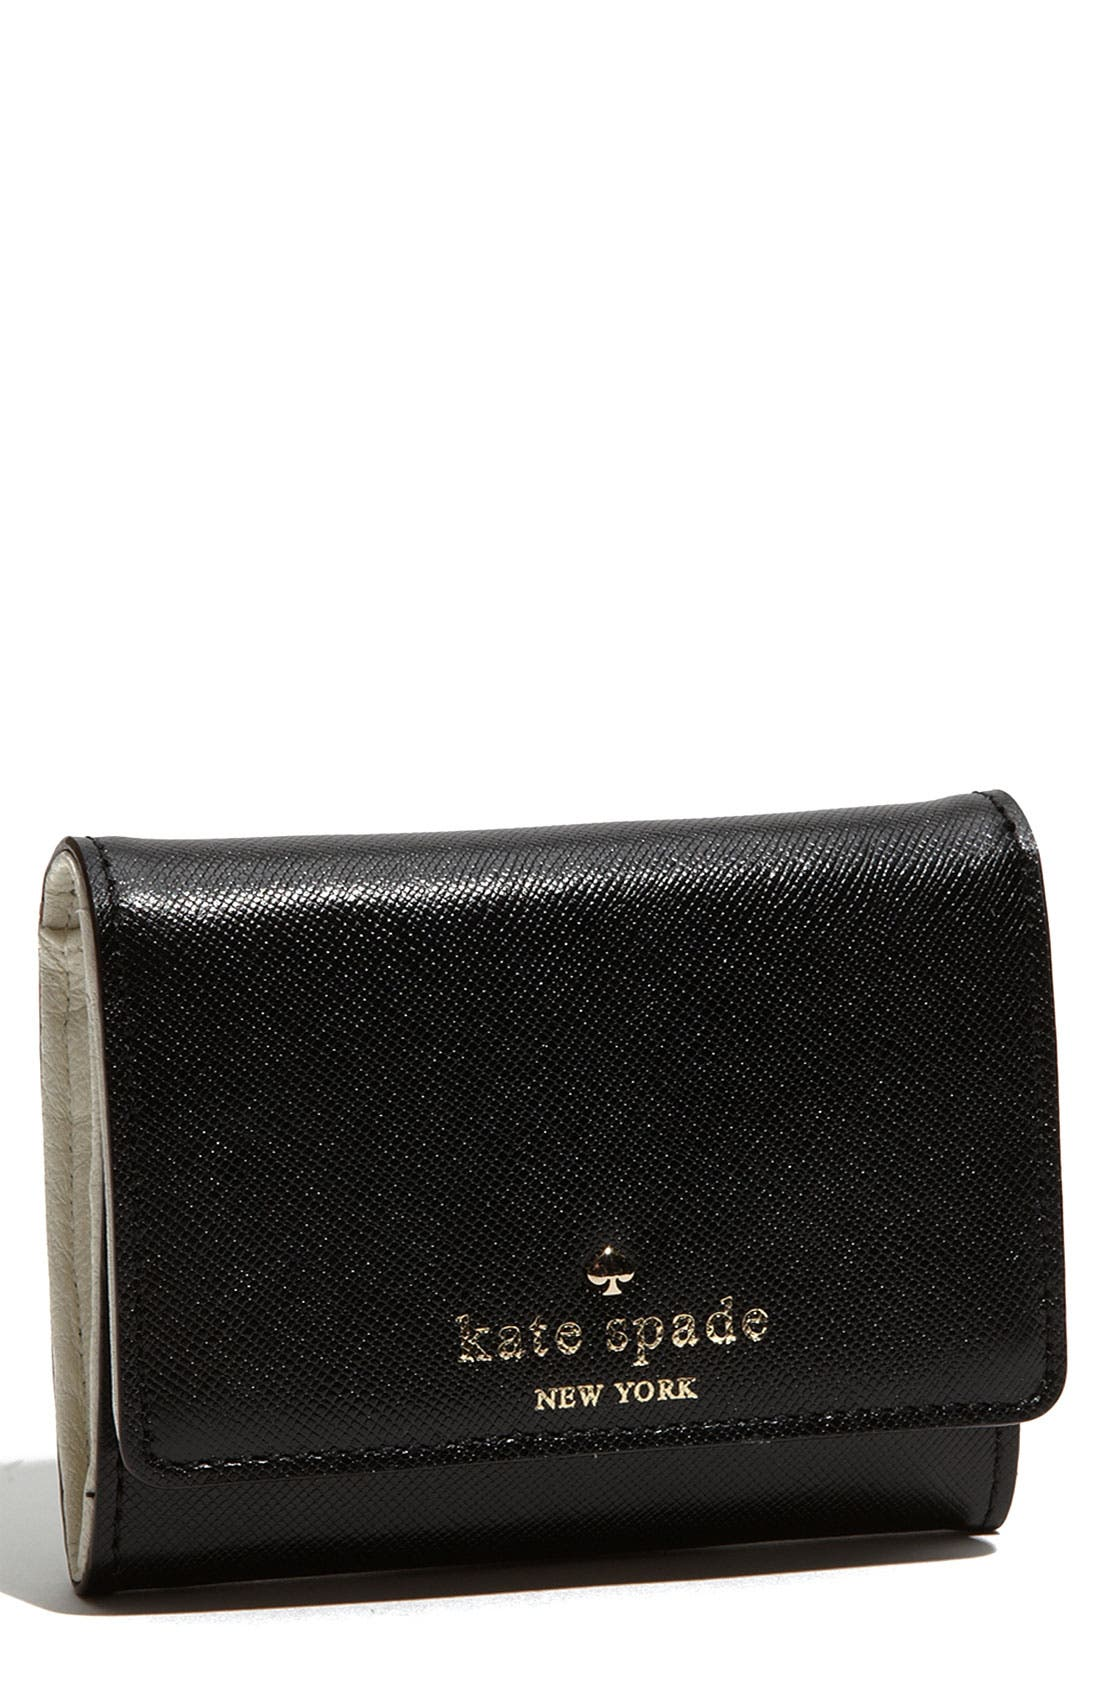 Alternate Image 1 Selected - kate spade new york 'mikas pond - darla' french wallet